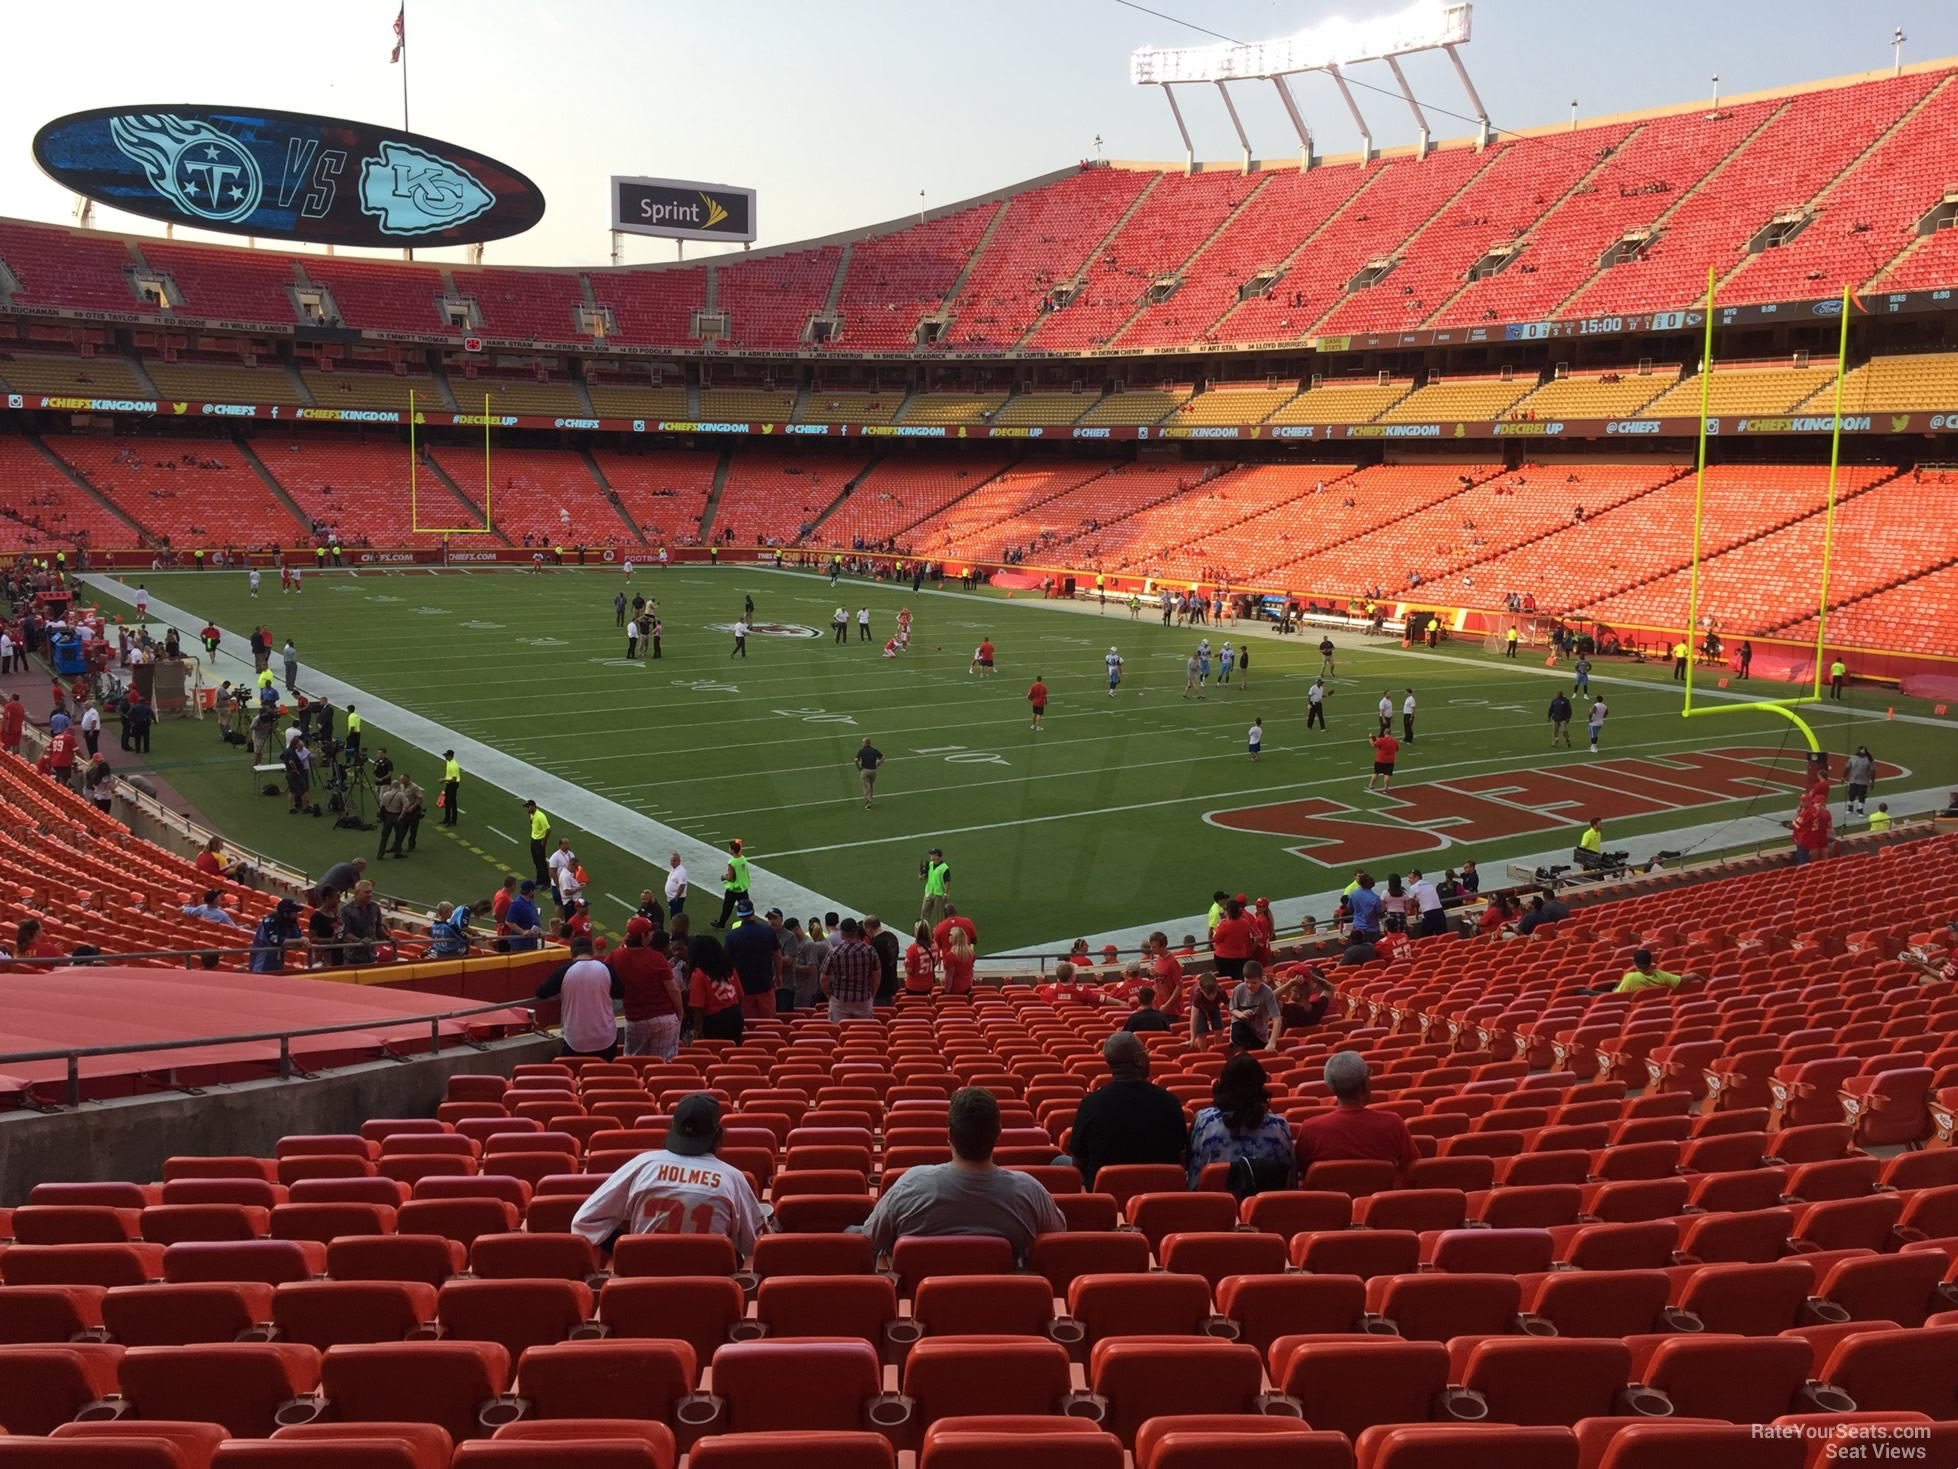 Seat View for Arrowhead Stadium Section 113, Row 30